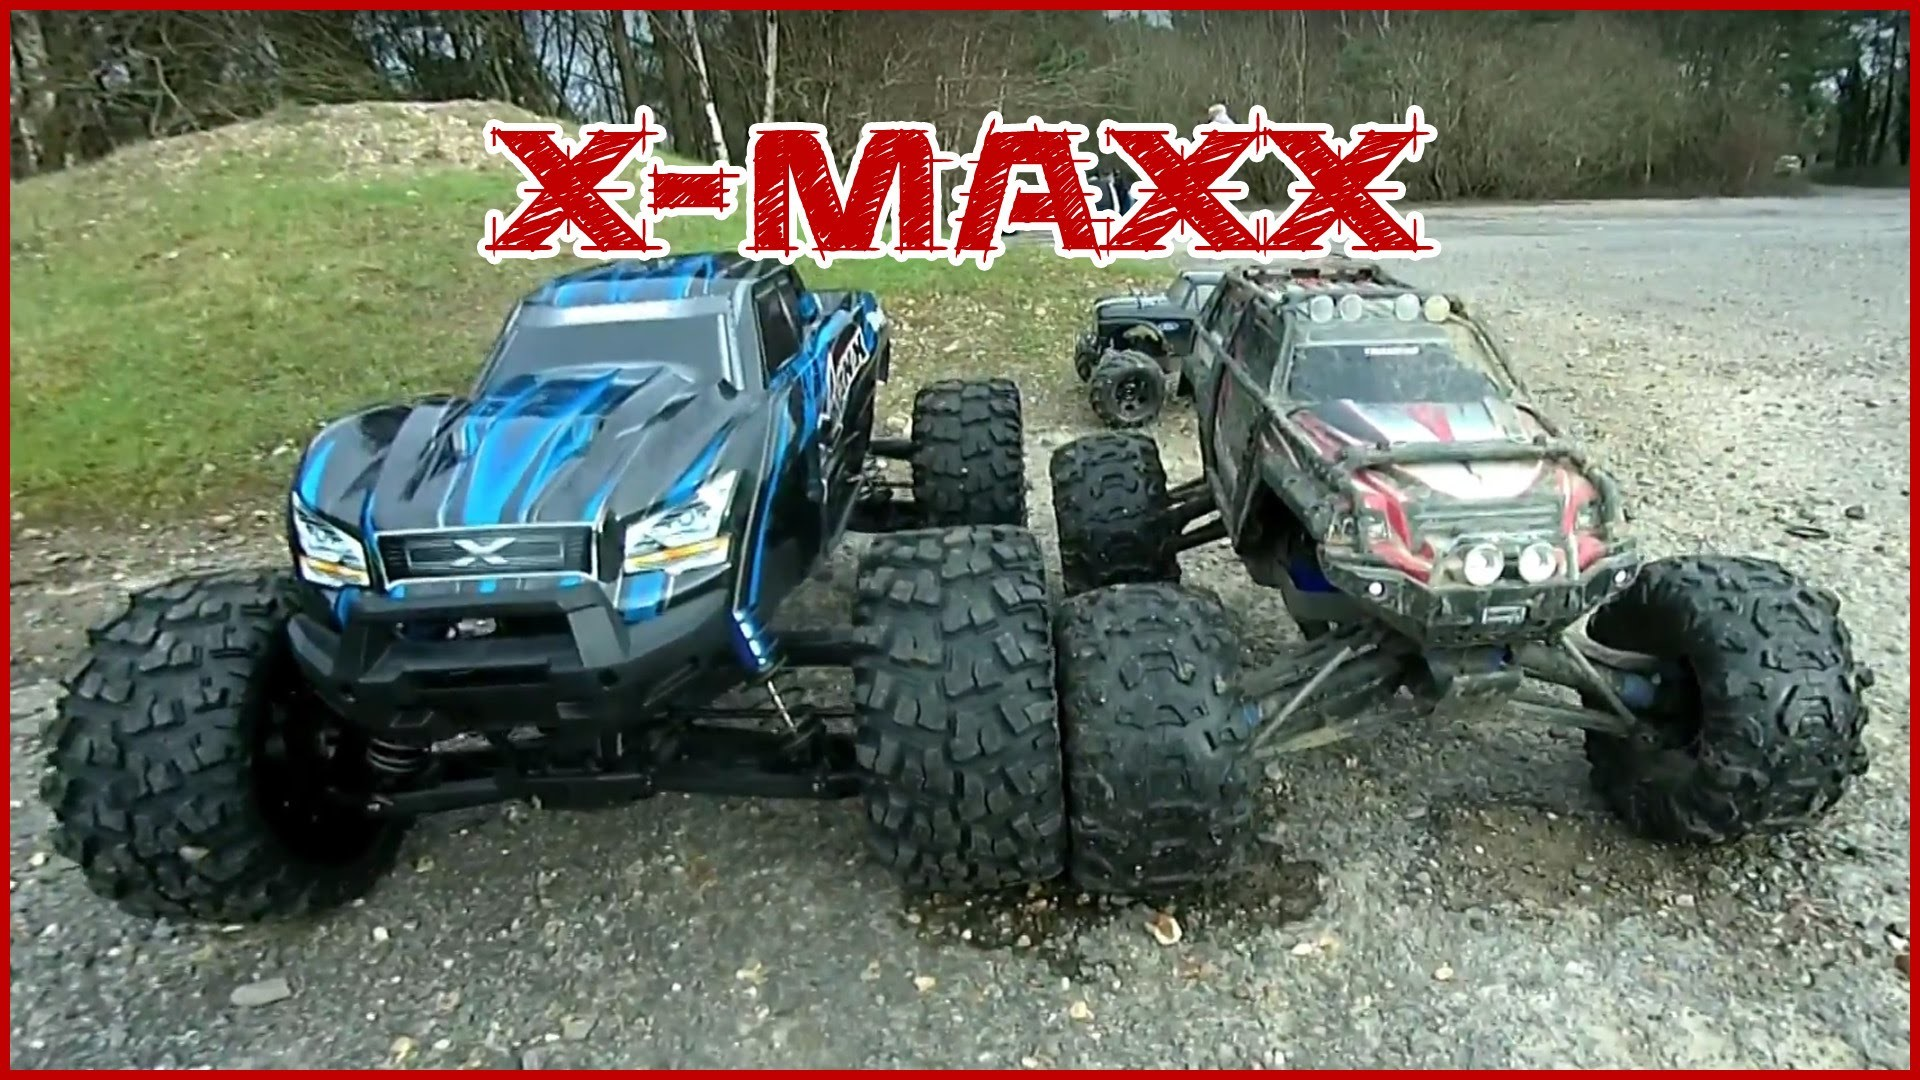 1920x1080 Traxxas X-Maxx - Size Comparision. Summit 1/10, Stampede and Summit 1/16 -  YouTube